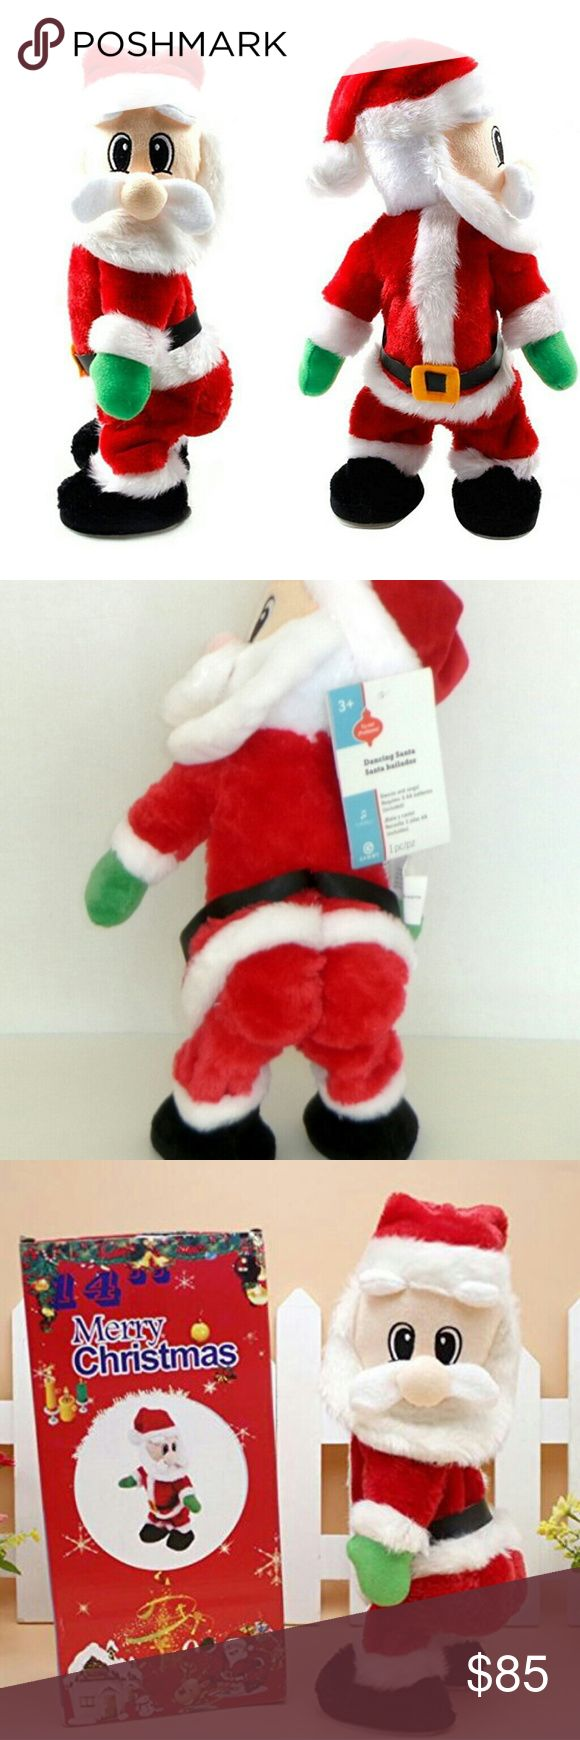 """Gemmy Twerking Dancing Singing FIREBALL Santa New 2018 original GEMMY twerking butt, shaking head Santa!  He sings """"Fireball"""". Penguin is about 15 inches tall.  New, with full size original GEMMY brand tags attached.  Three AA batteries are included.  To get him dancing please, press a button on how left foot right under the embroidered """"G"""" for Gemmy. Recommended age:  from 3 to 88 You can watch the video about him:  https://www.youtube.com/watch?v=Ww7X4RzKdpM Free and fast shipping! Gemmy…"""